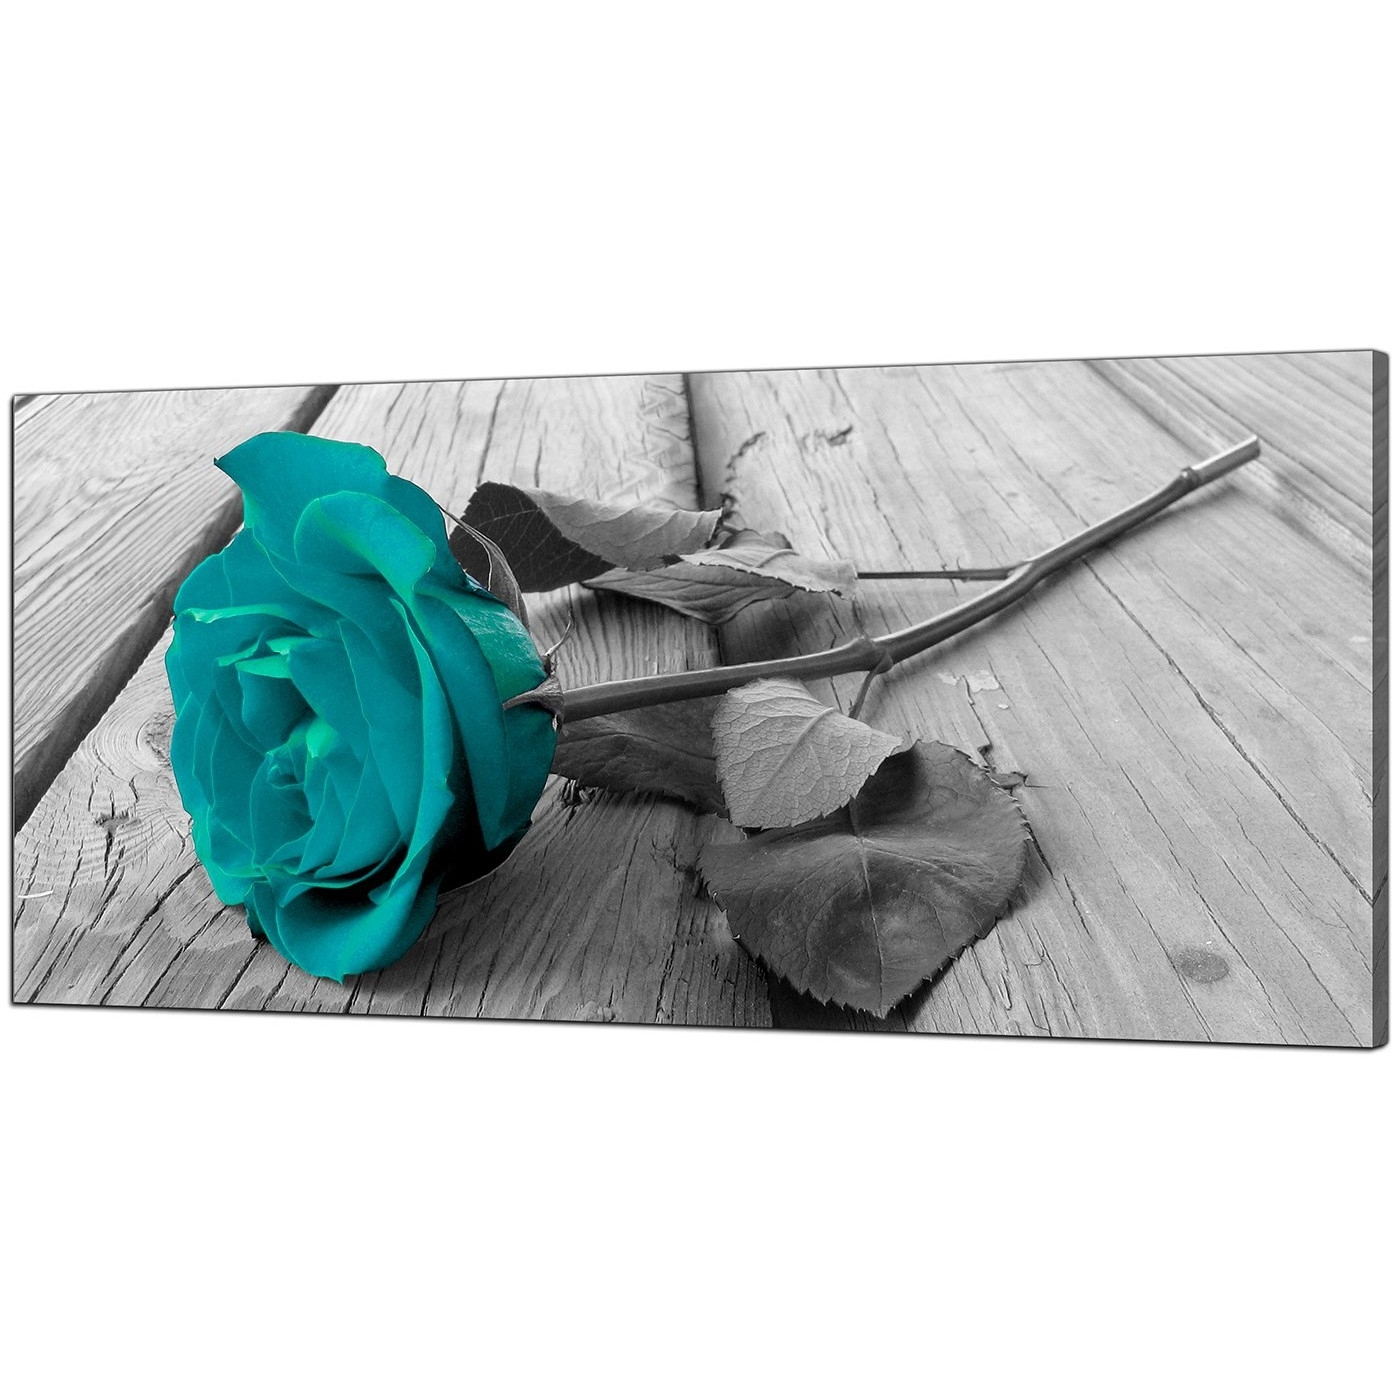 Fashionable Modern Black And White Canvas Wall Art Of A Teal Rose Flower In Teal Wall Art Uk (View 4 of 15)